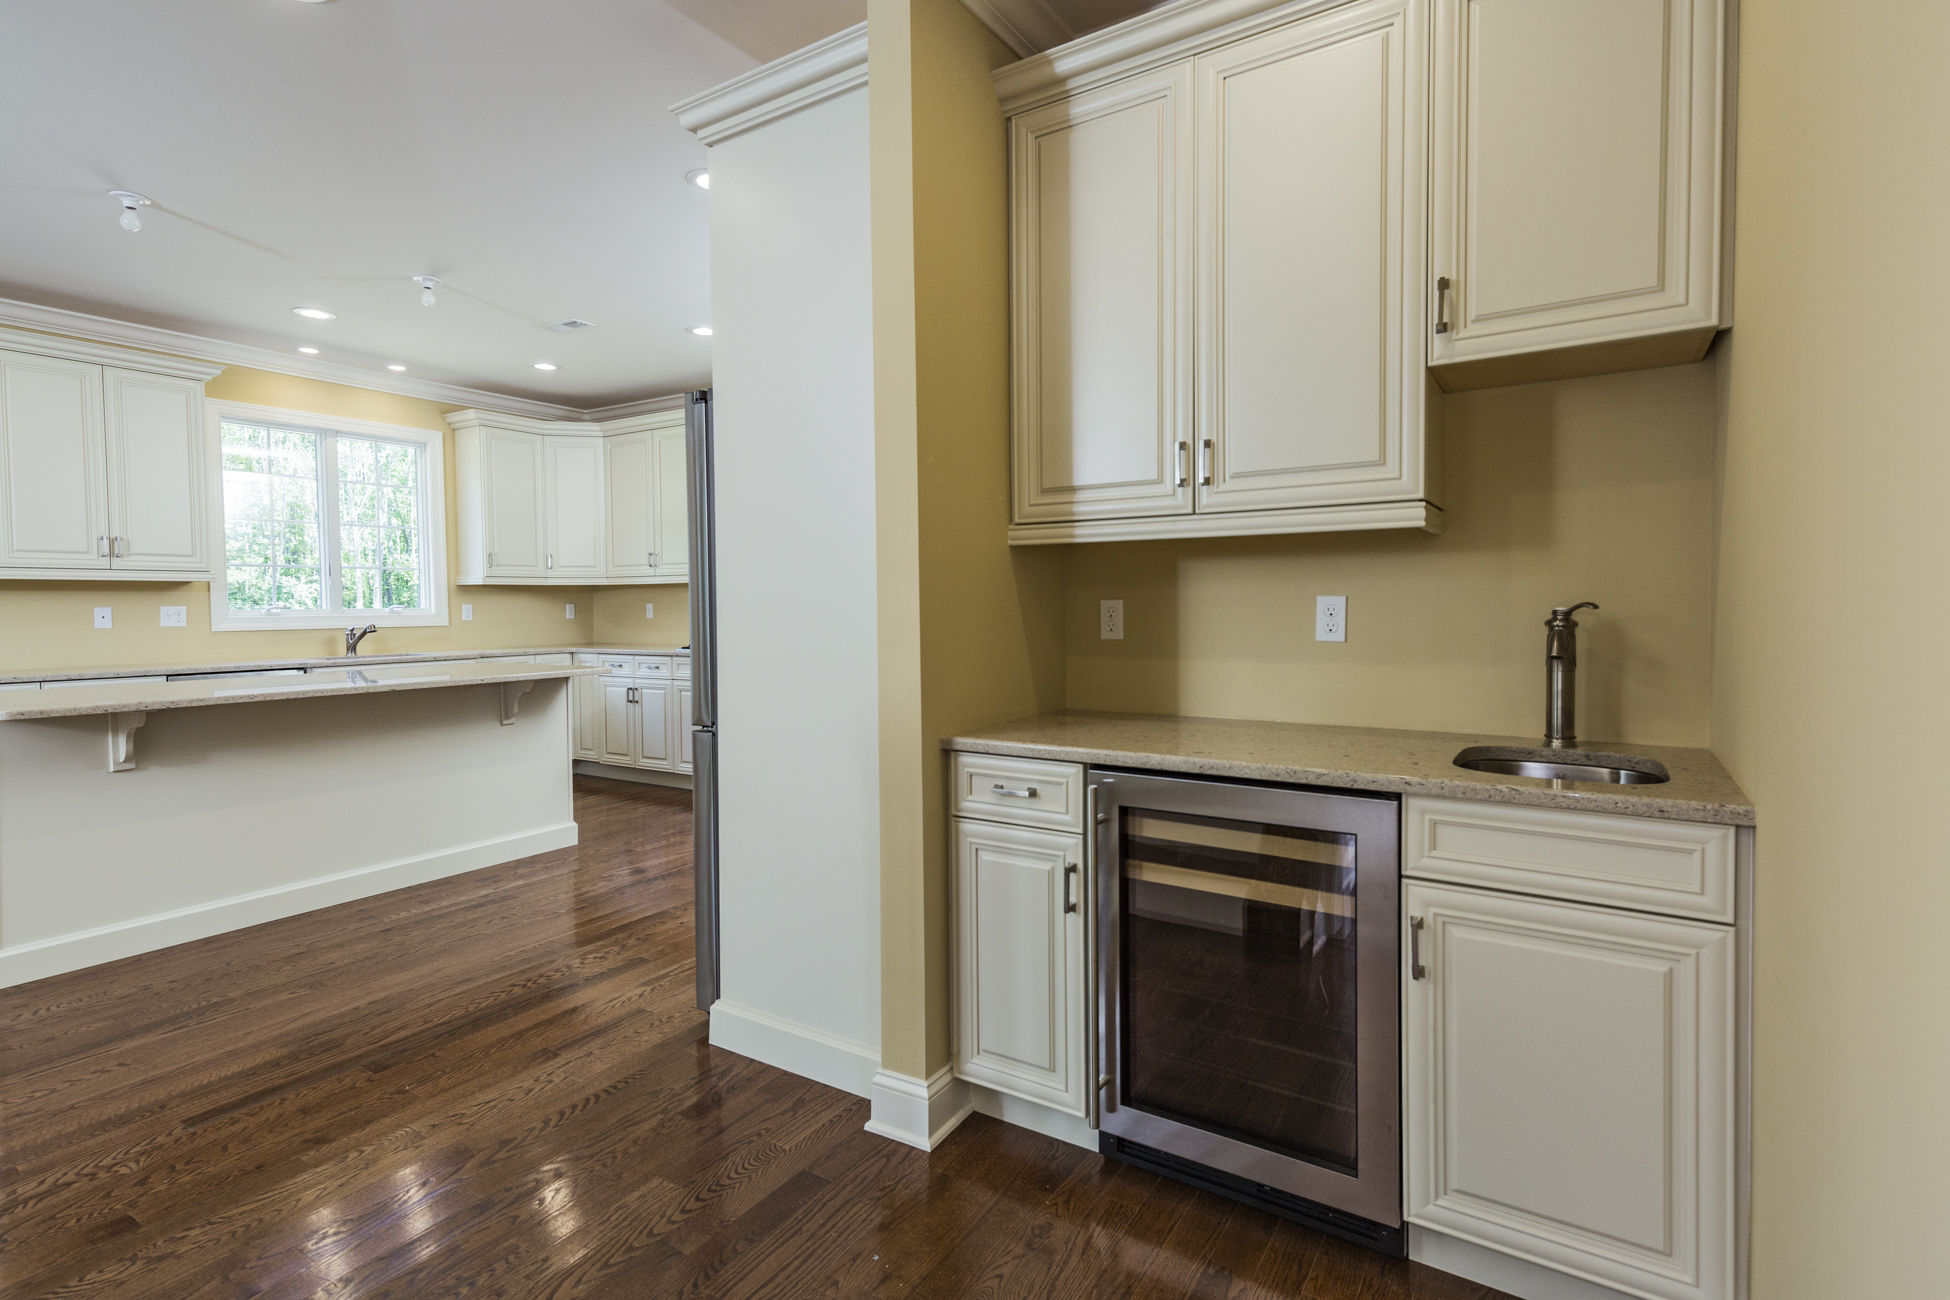 Additional photo for property listing at Prepare To Be Impressed 1 Coach Lane Hopewell, Нью-Джерси 08530 Соединенные Штаты